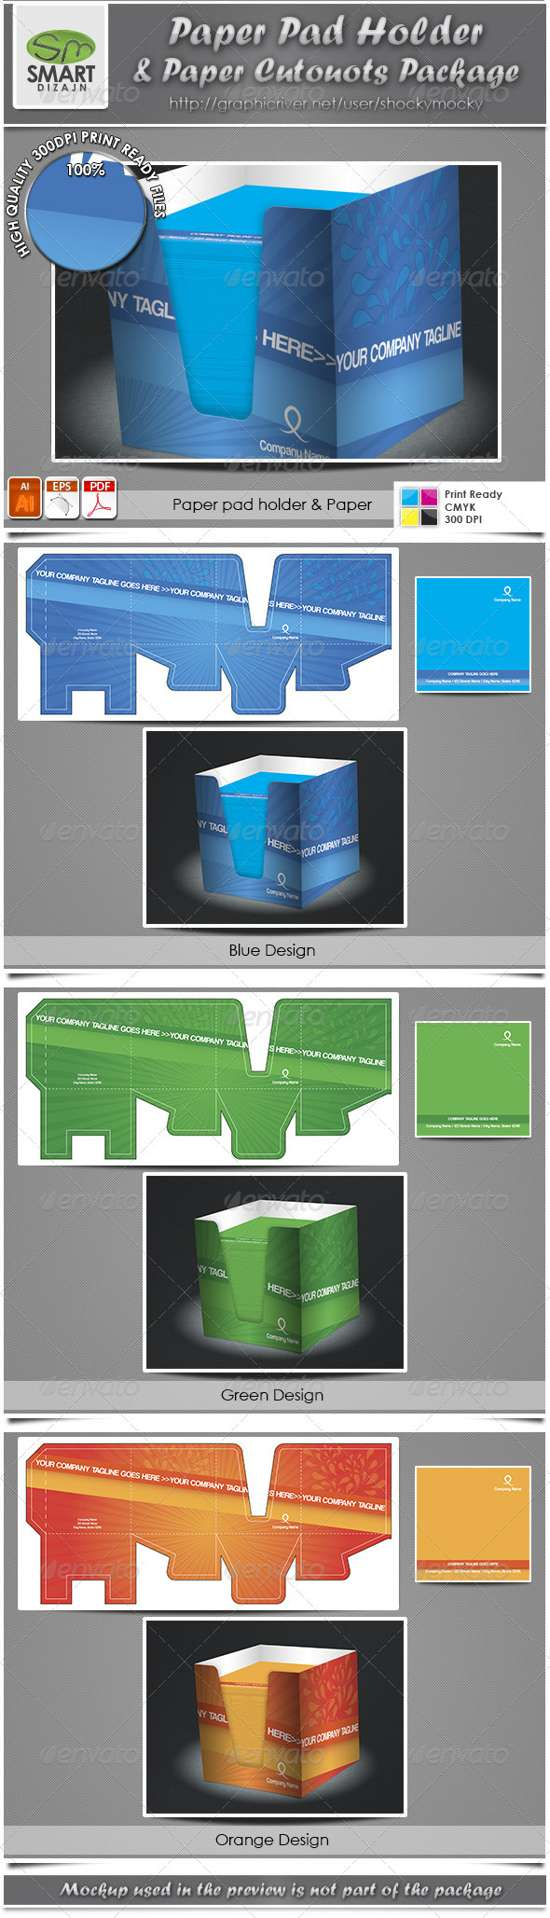 paper pad holder packaging template